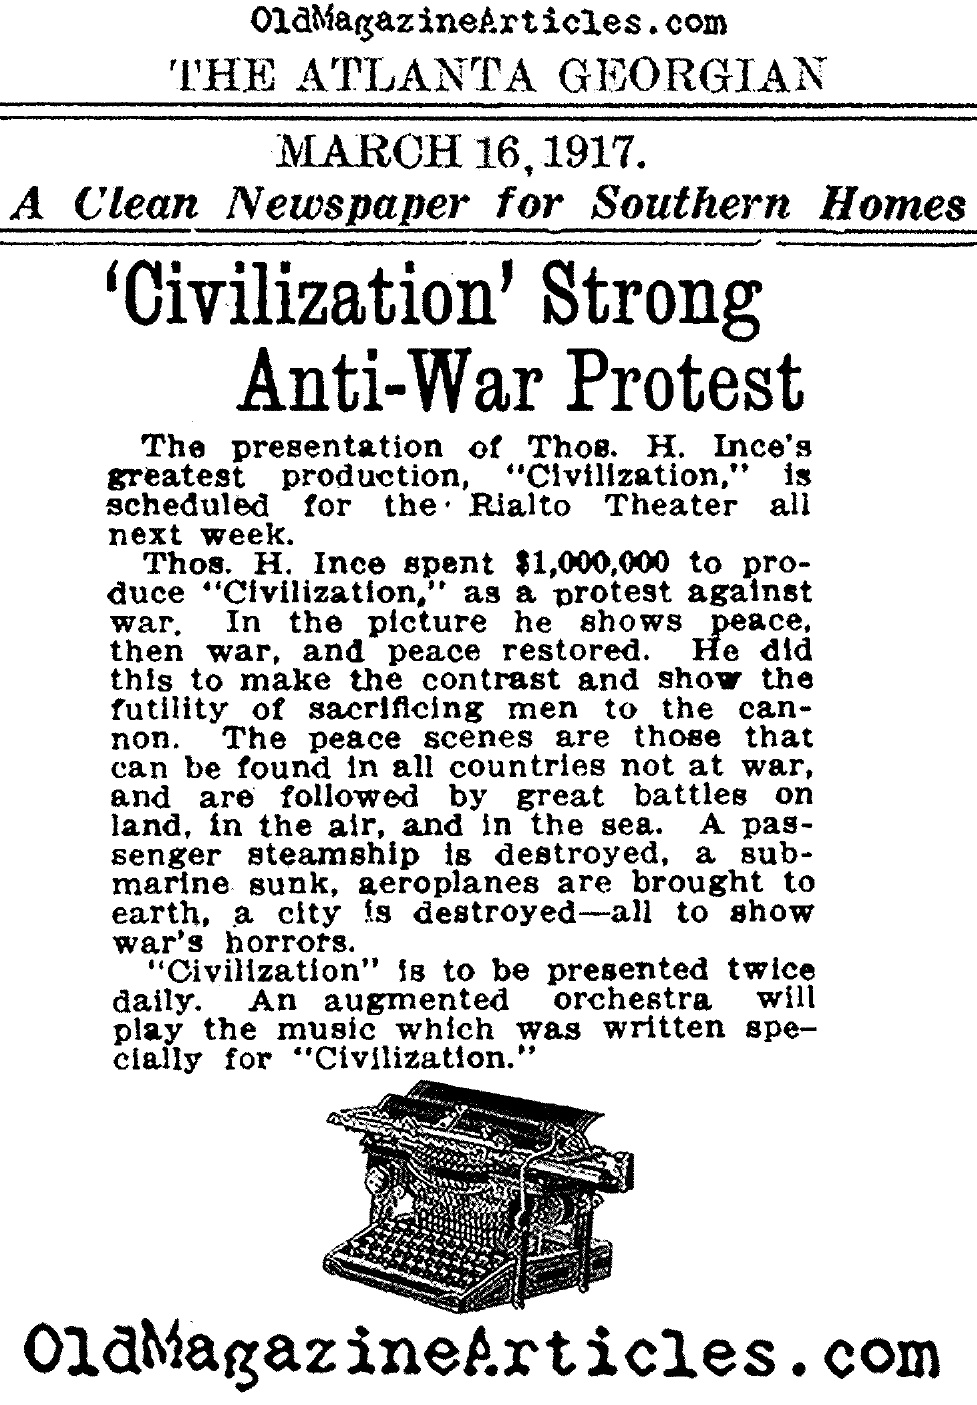 REVIEW OF SILENT FILM CIVILIZATION BY THOMAS INCETHOMAS INCE – Movie Review